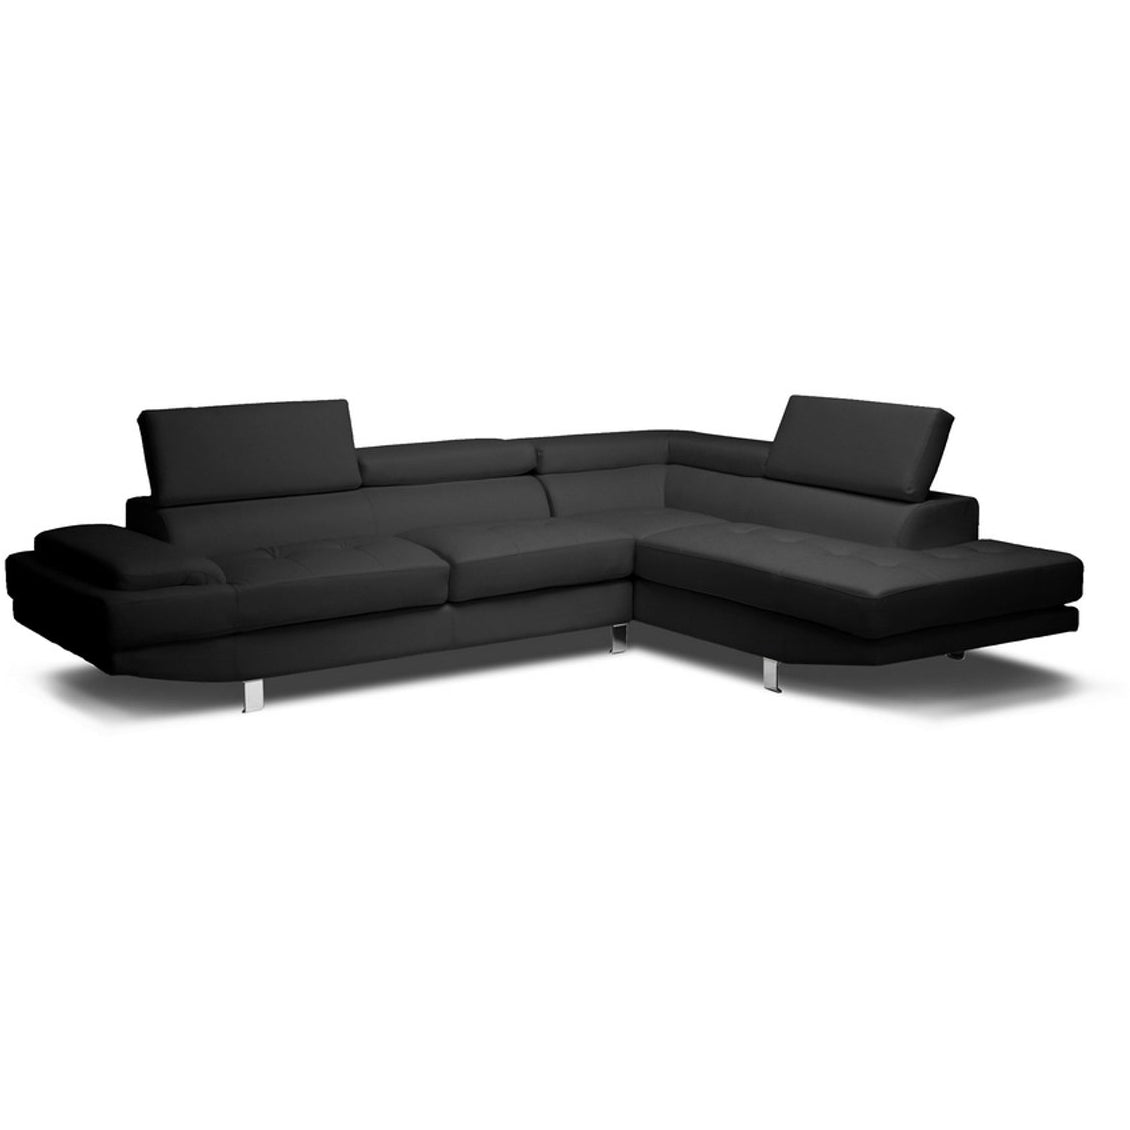 Baxton Studio Selma Black Leather Modern Sectional Sofa Baxton Studio-sectionals-Minimal And Modern - 1